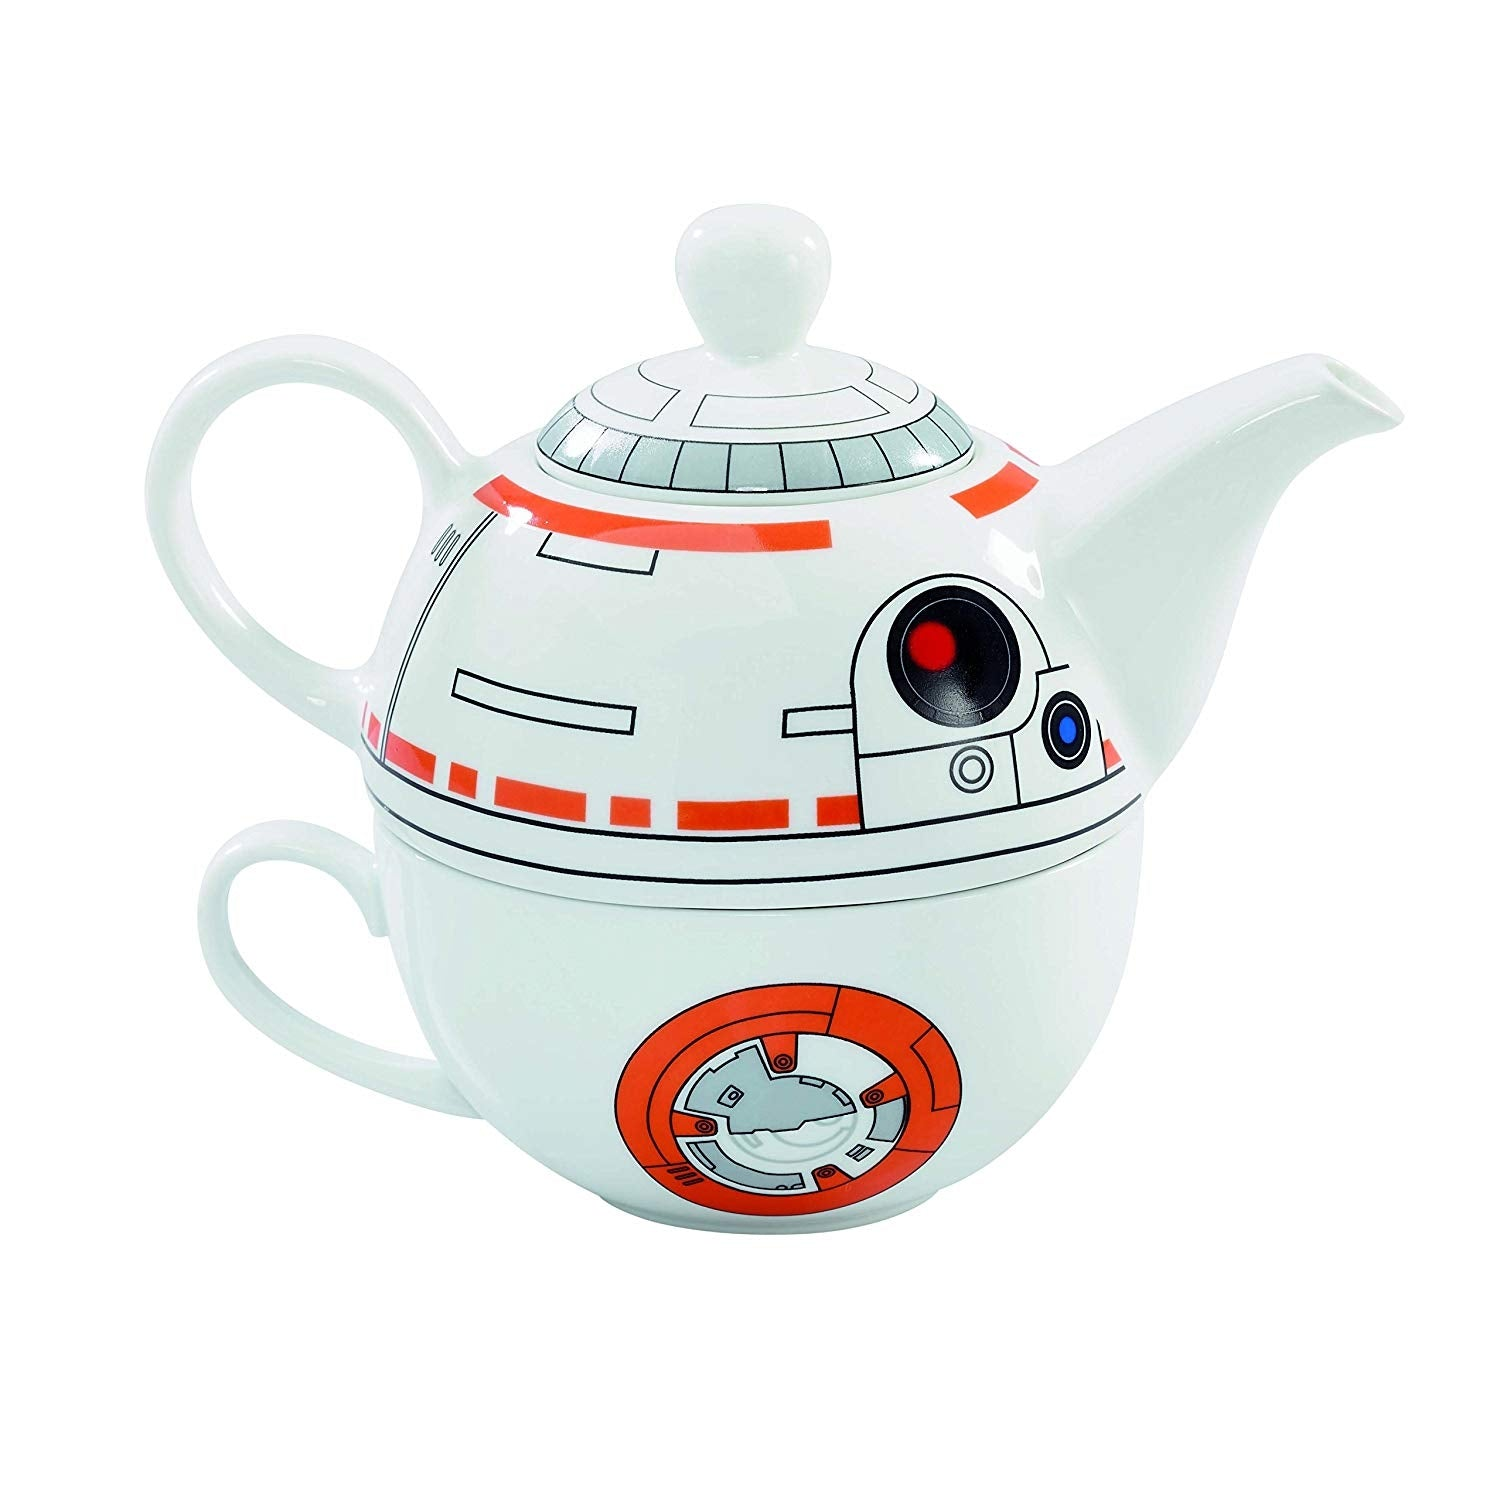 STAR WARS BB-8 TEAPOT & MUG SET